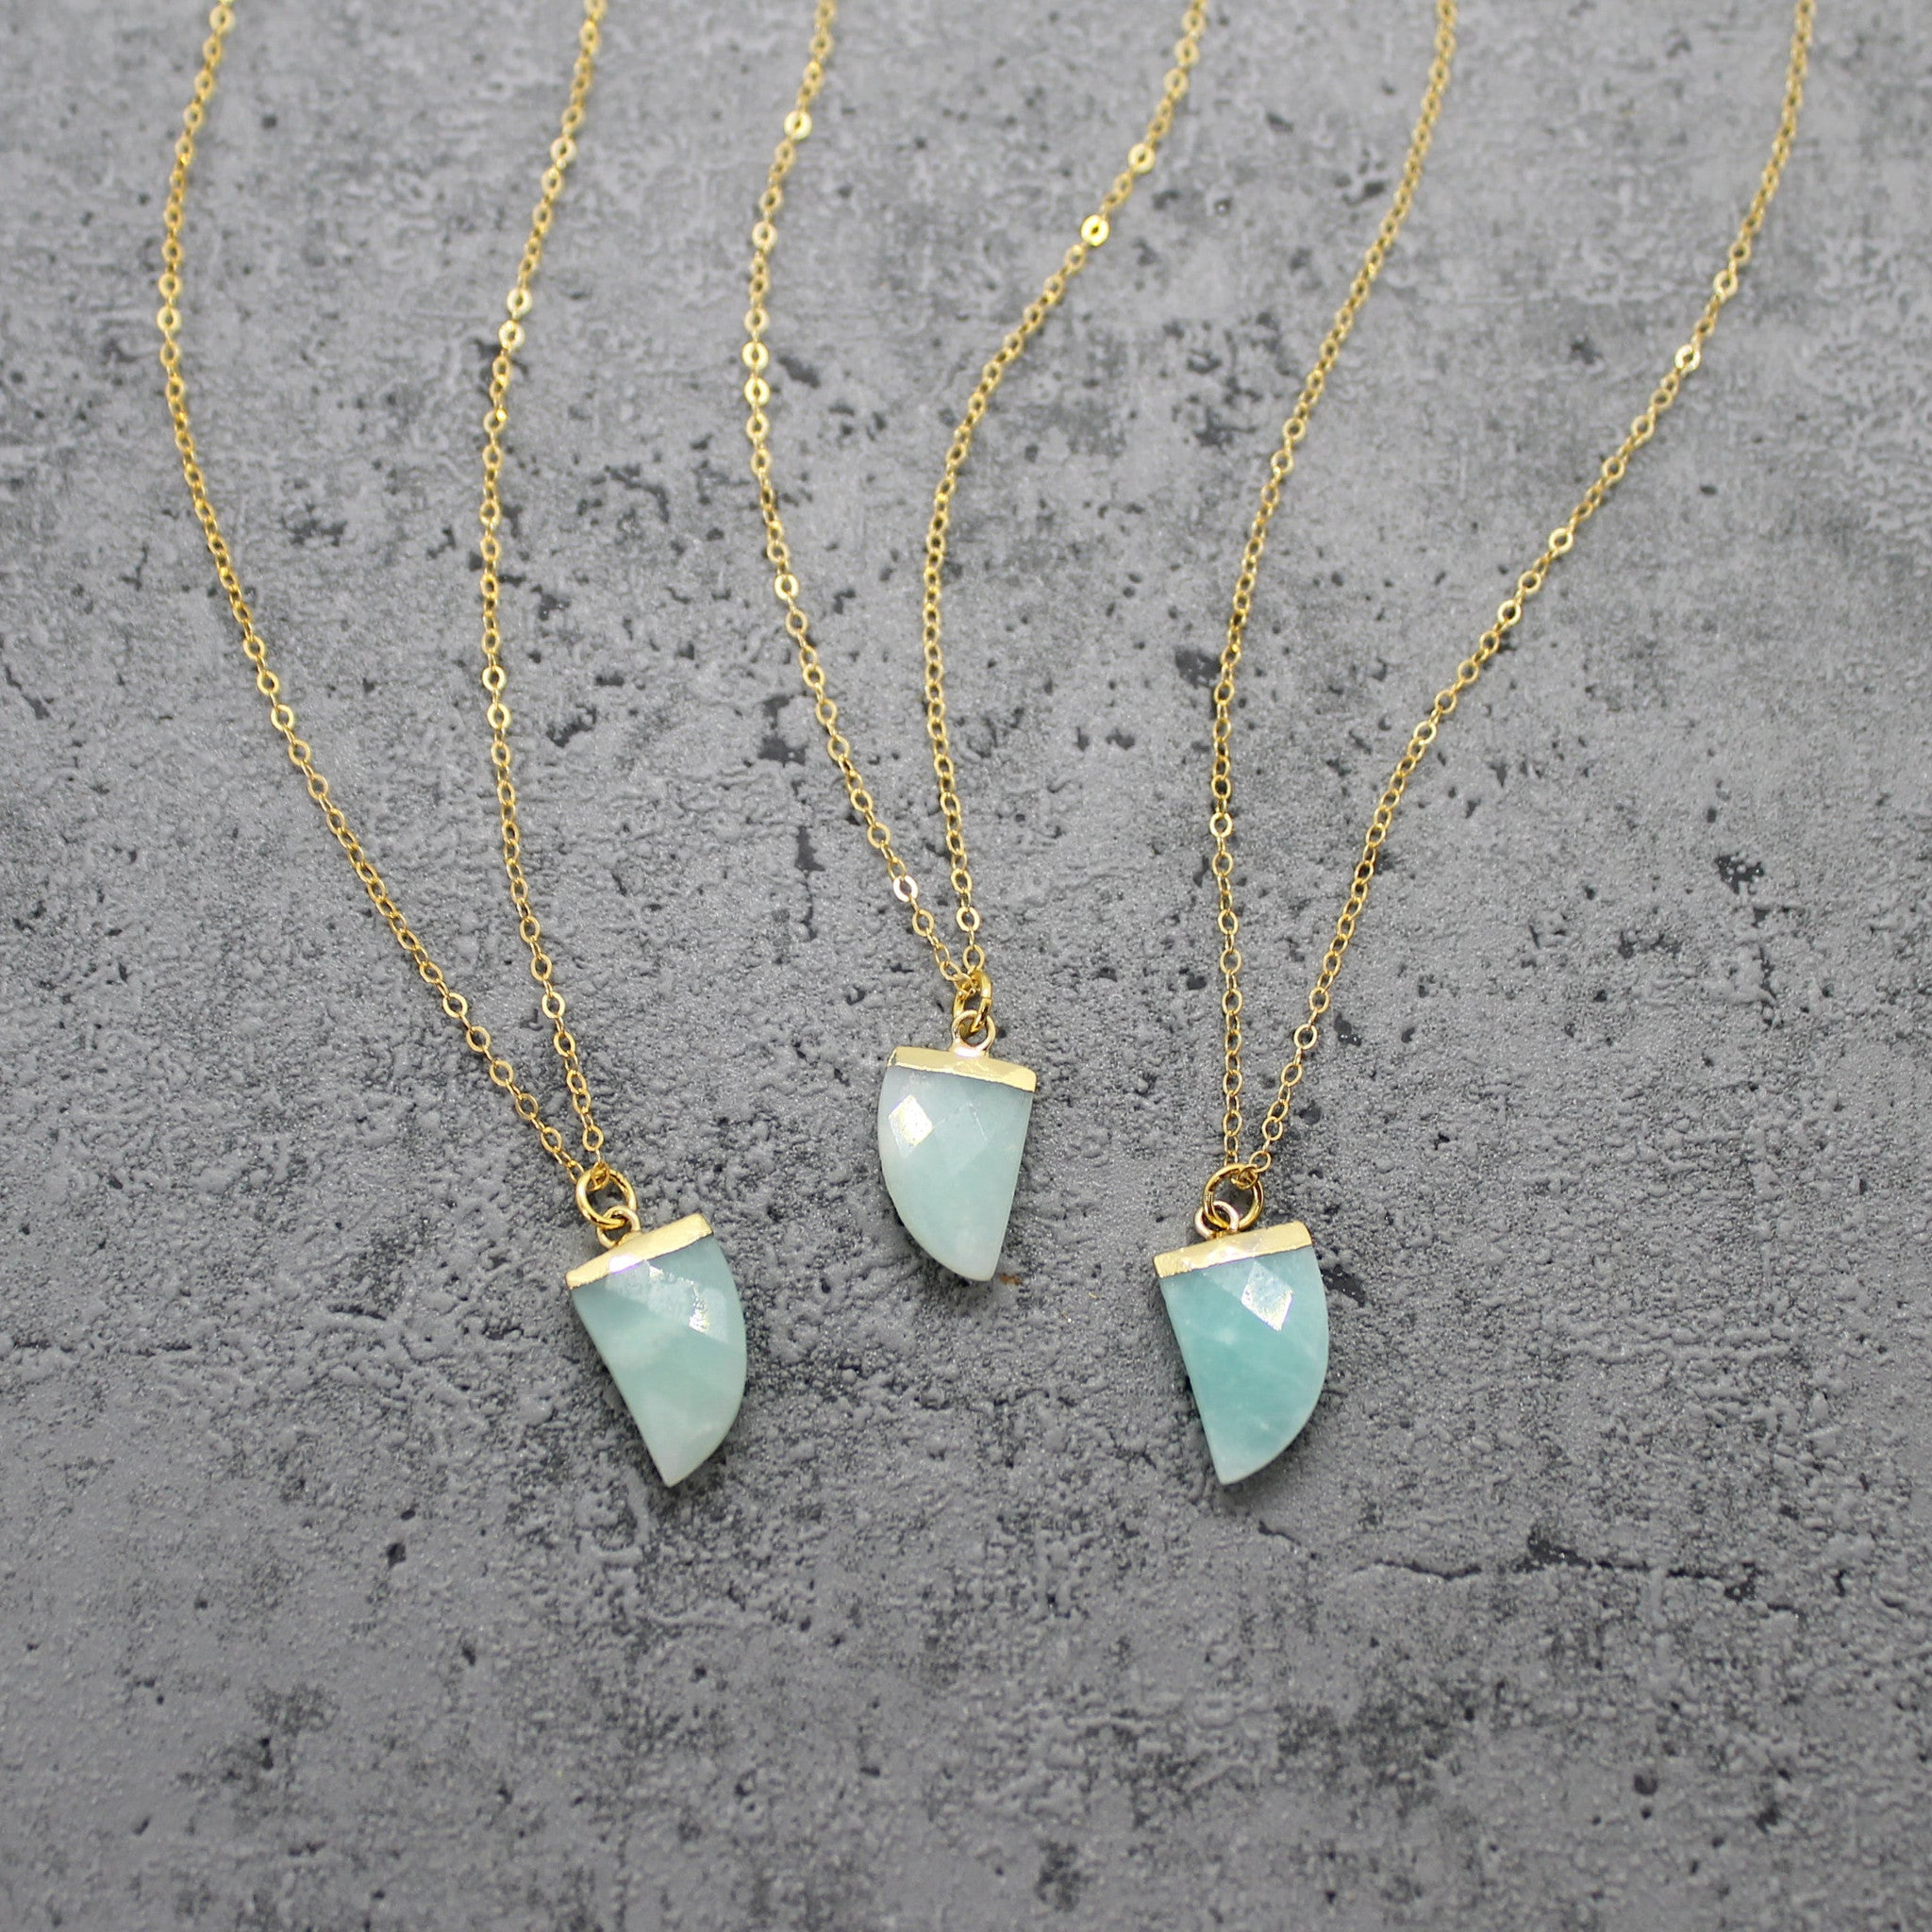 Amazonite horn necklace - Mara studio